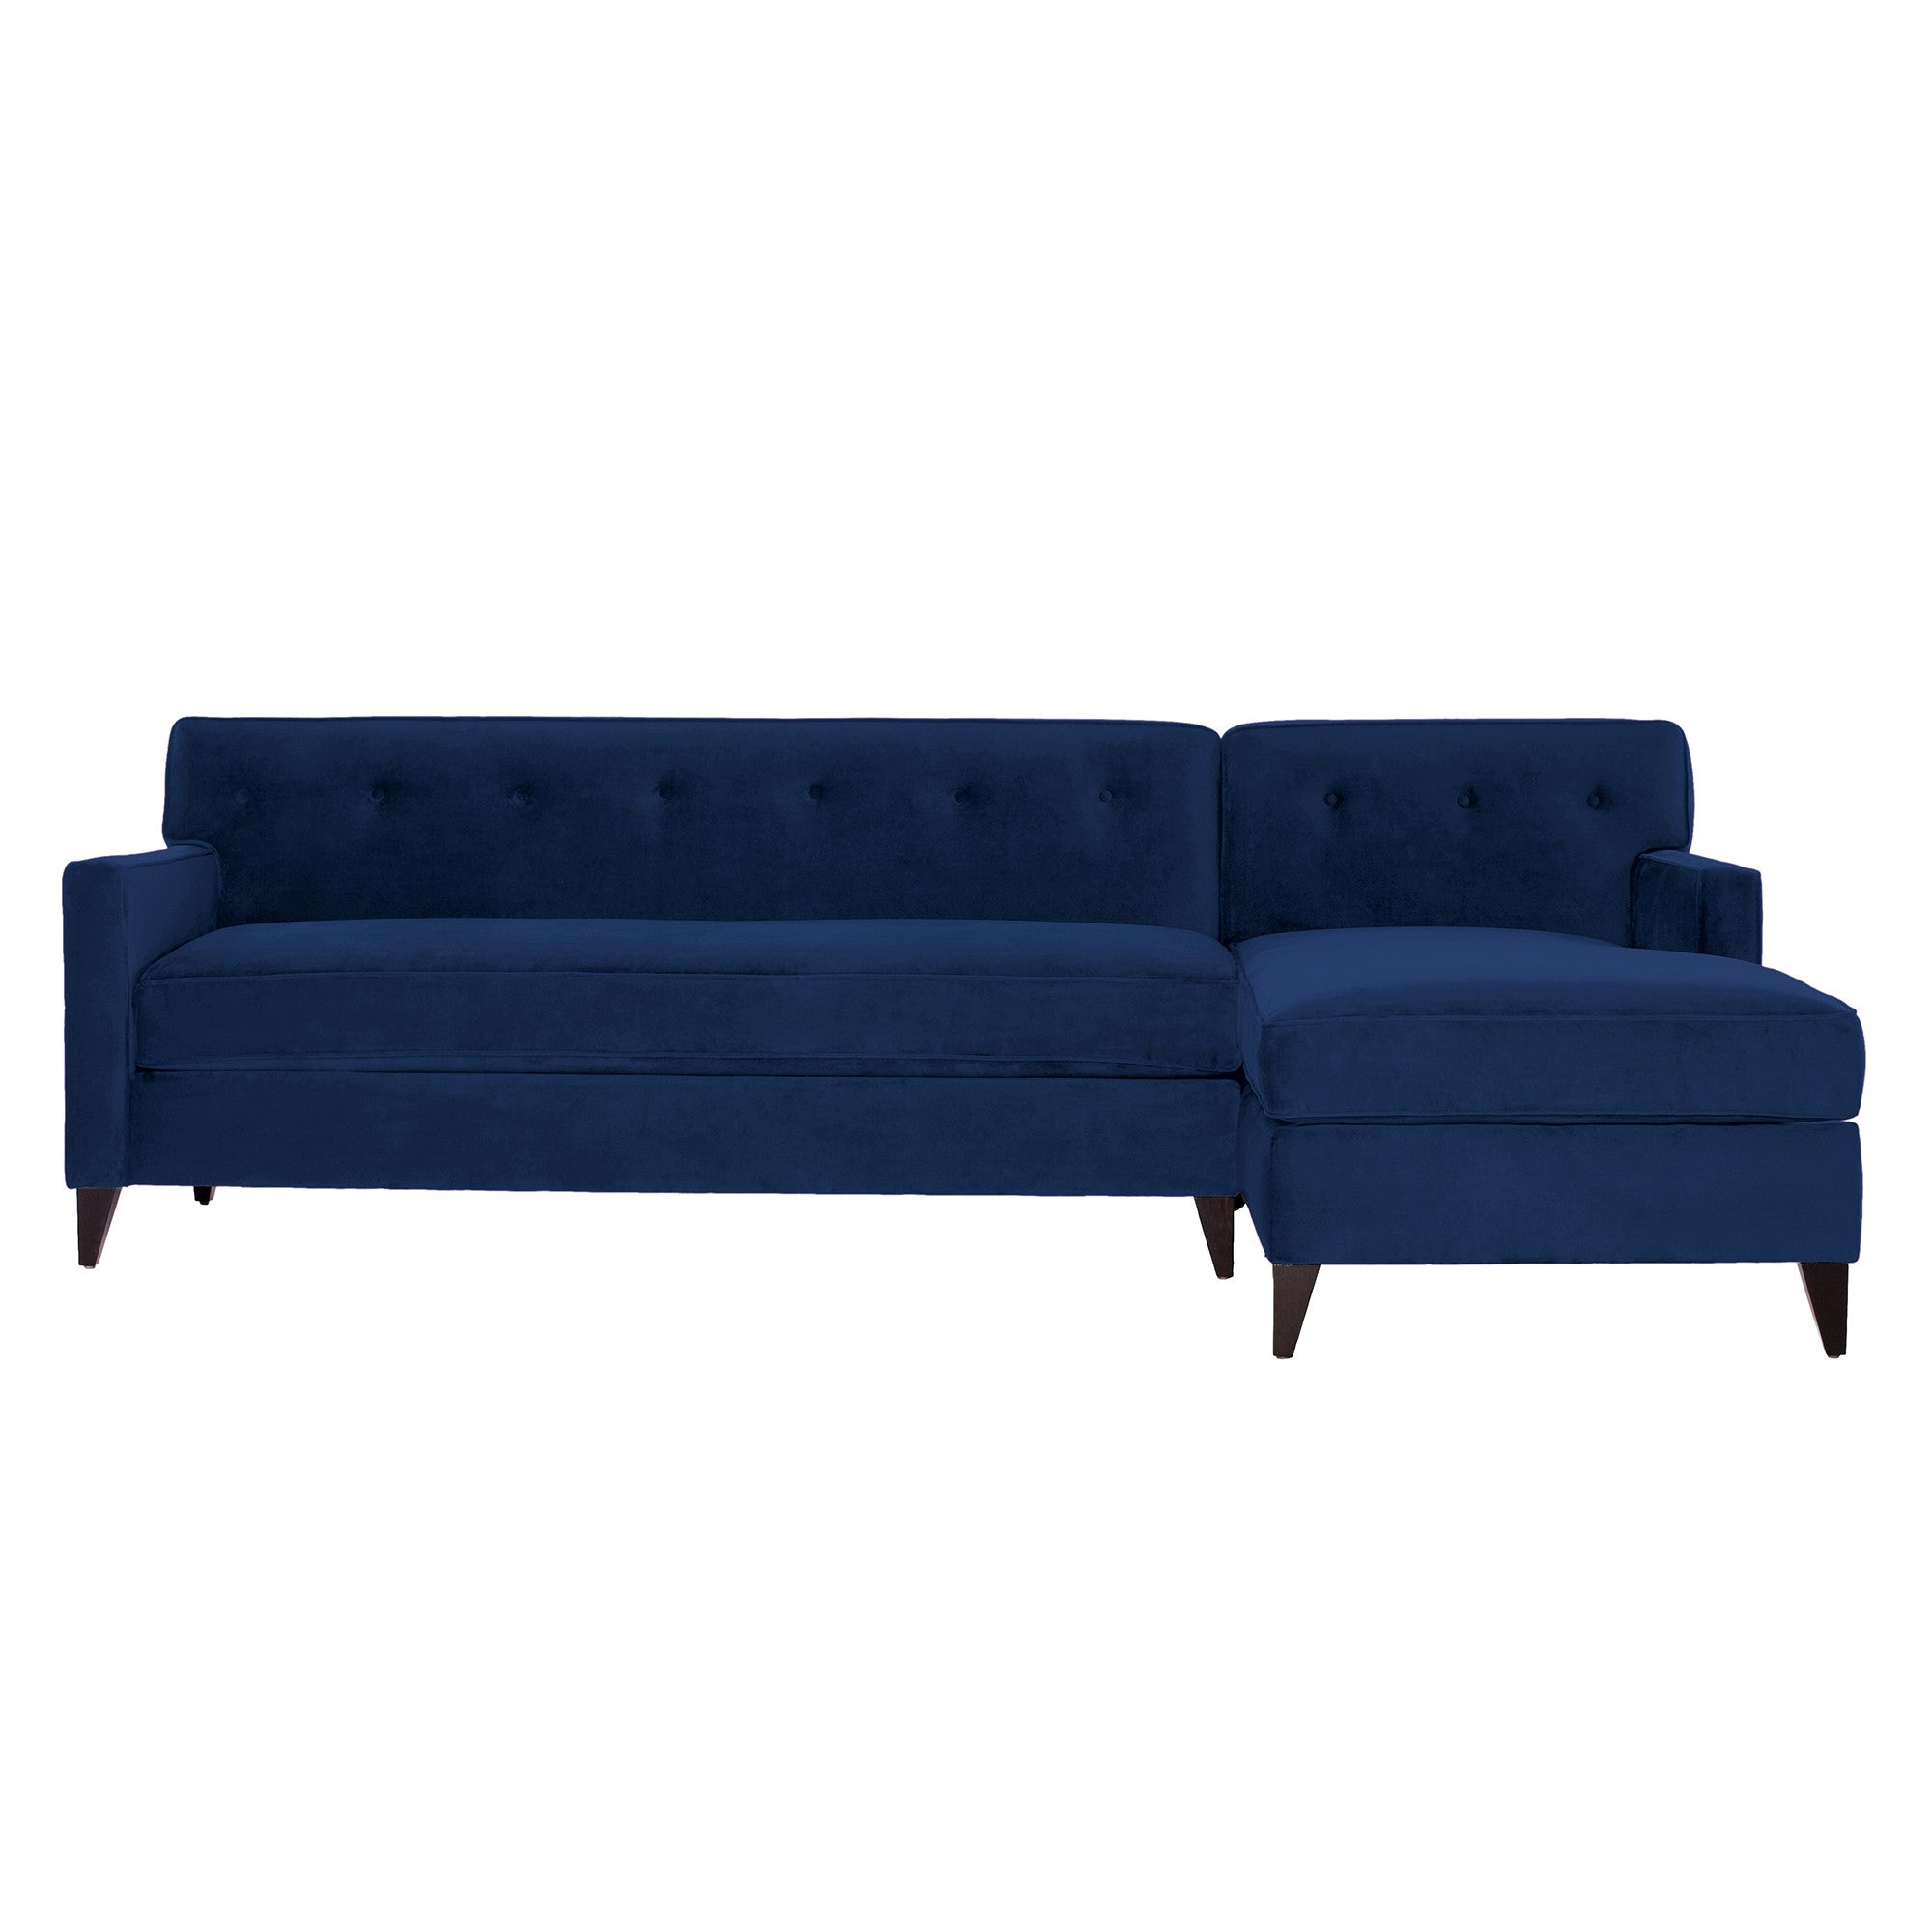 Harrison 2pc Sectional Sofa From Kyle Schuneman CHOICE OF FABRICS